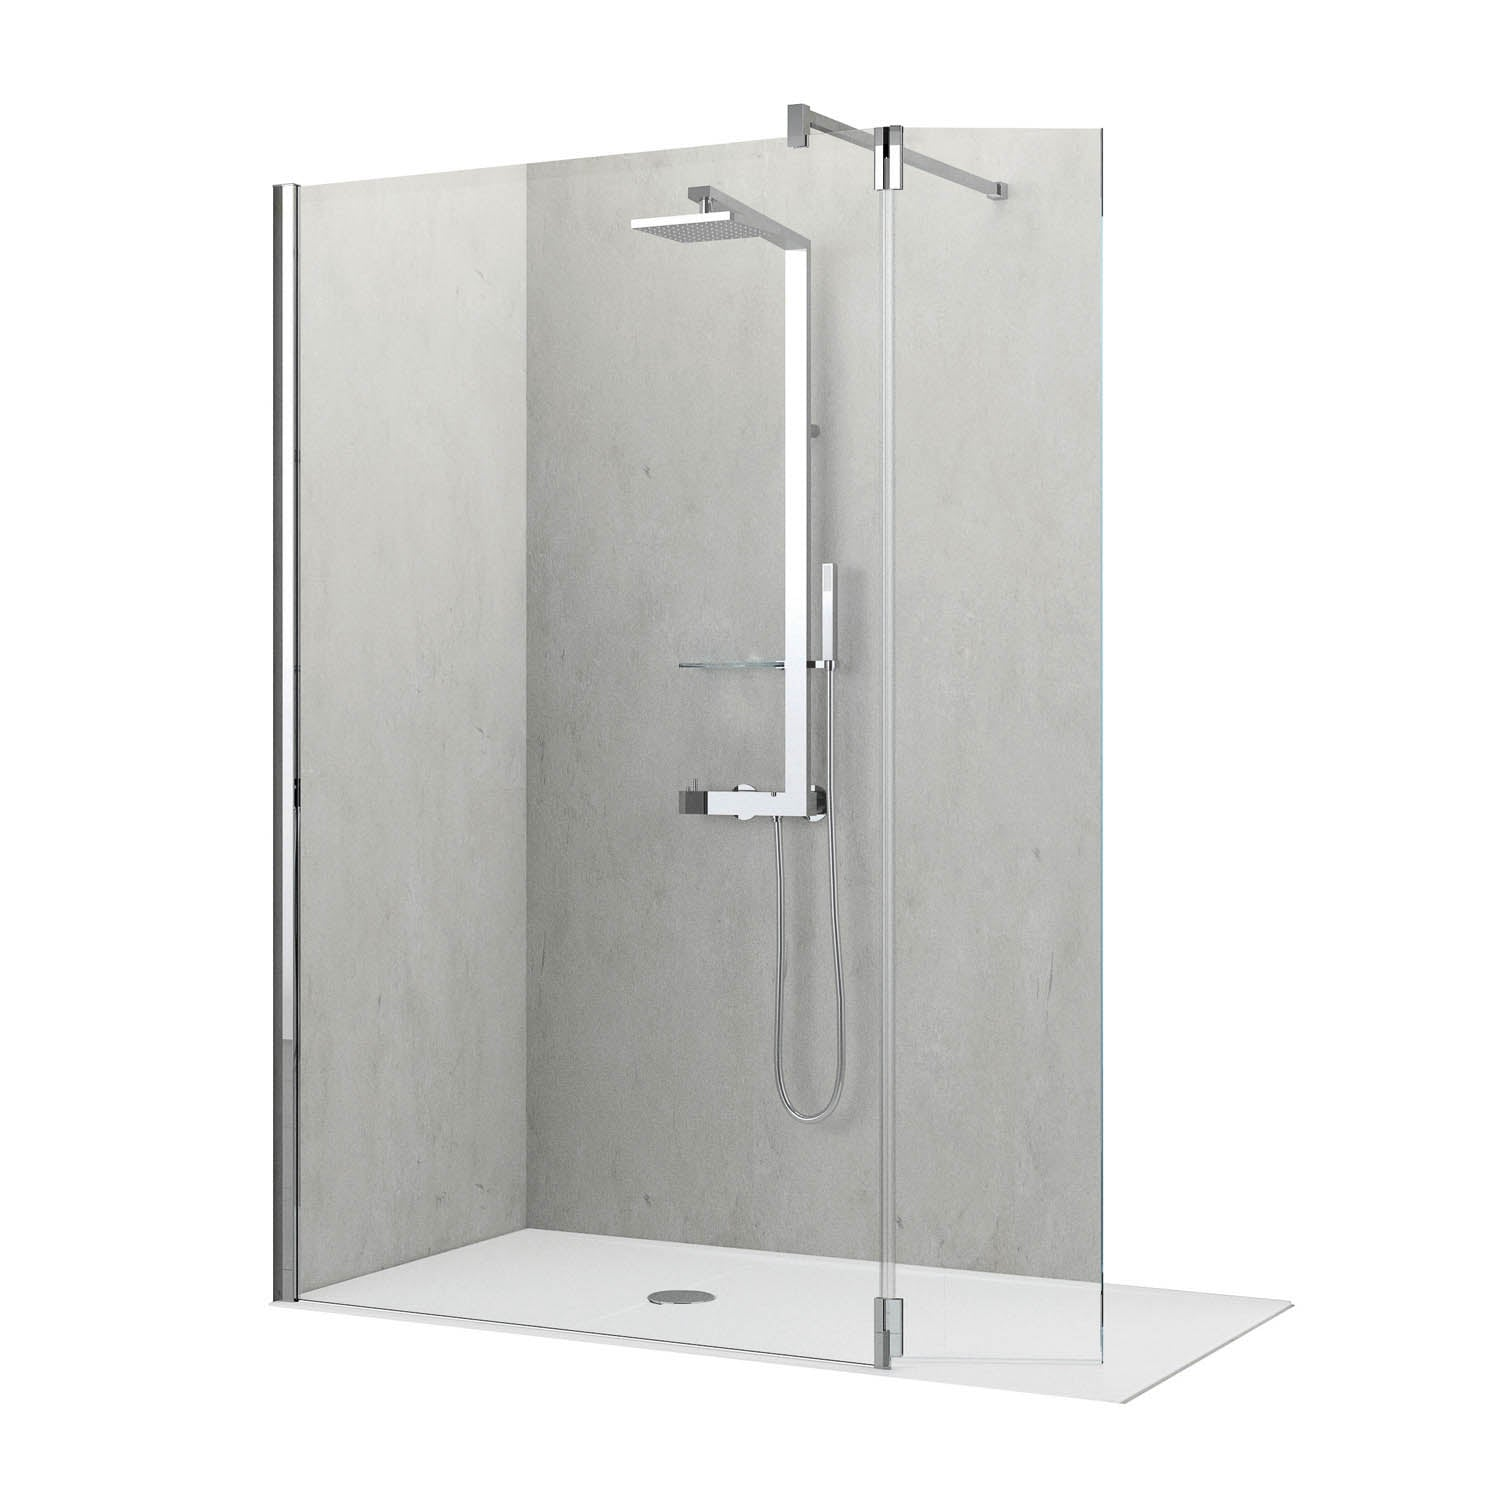 970-1000mm Ergo Wet Room Screen Clear Glass with a chrome finish on a white background